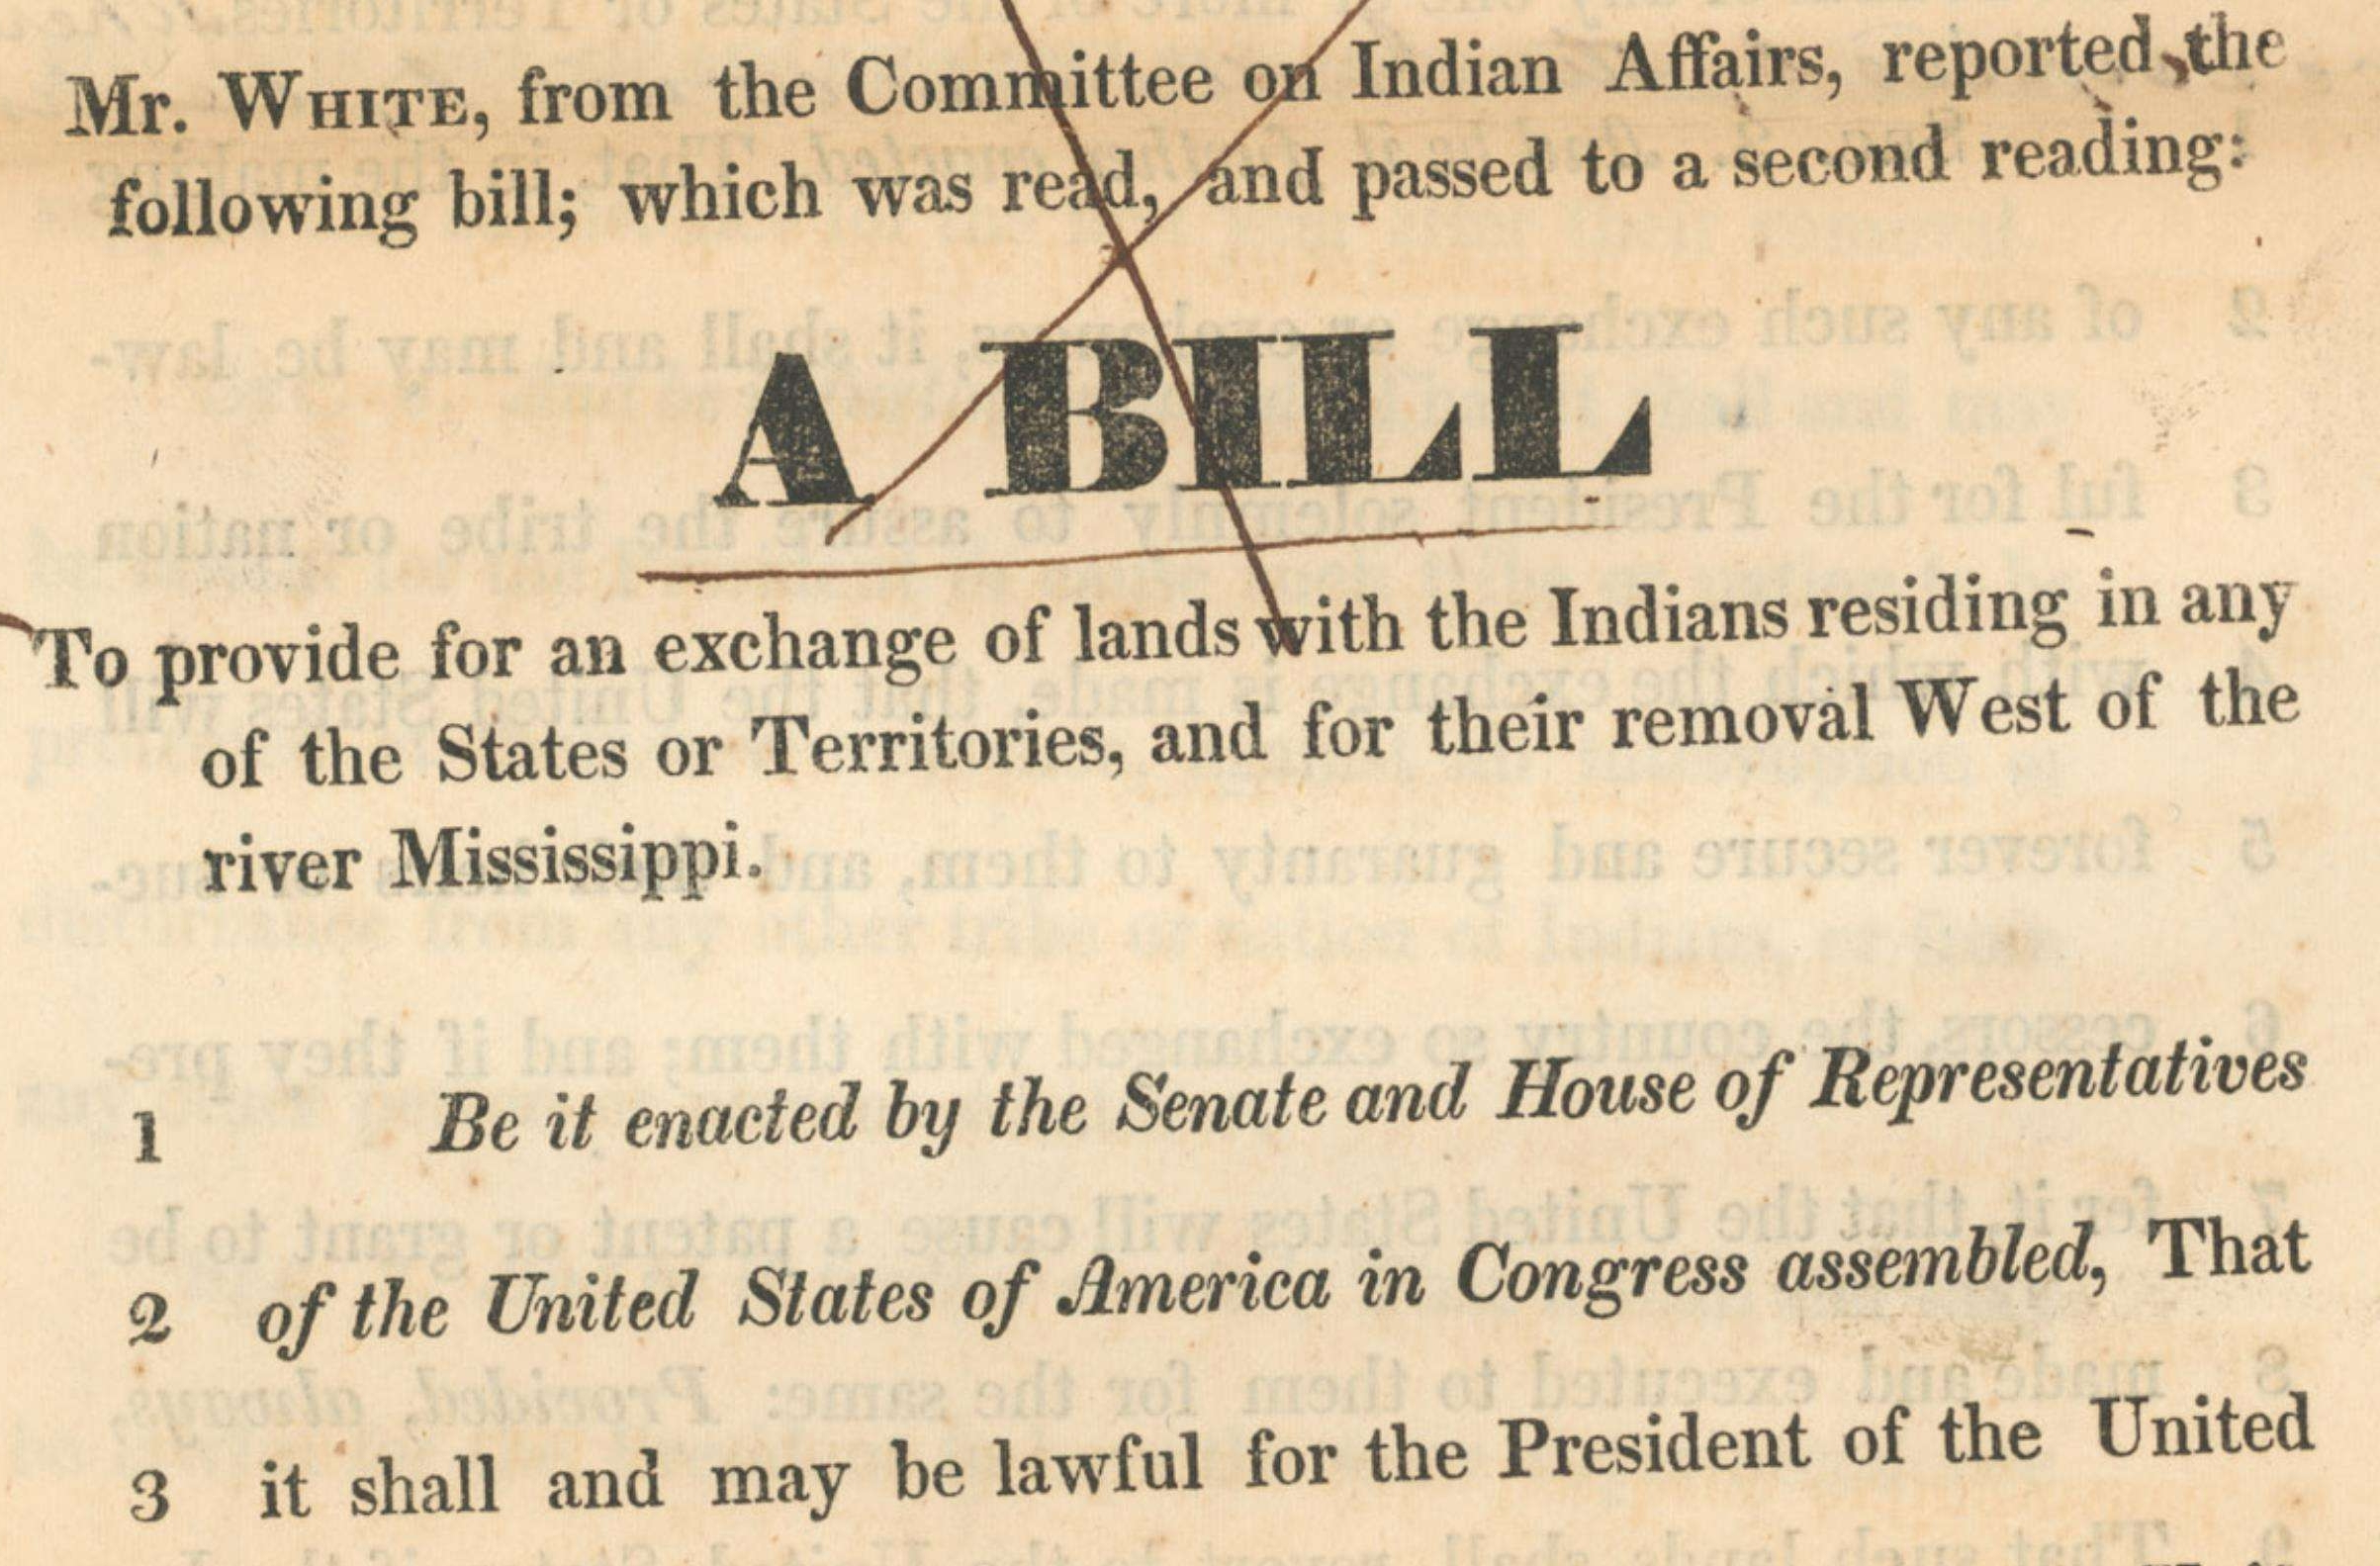 analysis of the indian removal act M whalen the indian removal act of 1830 with the population of america increasing, white settlers were pushing the government to obtain native american lands in the lower south which would be ideal for growing cotton.